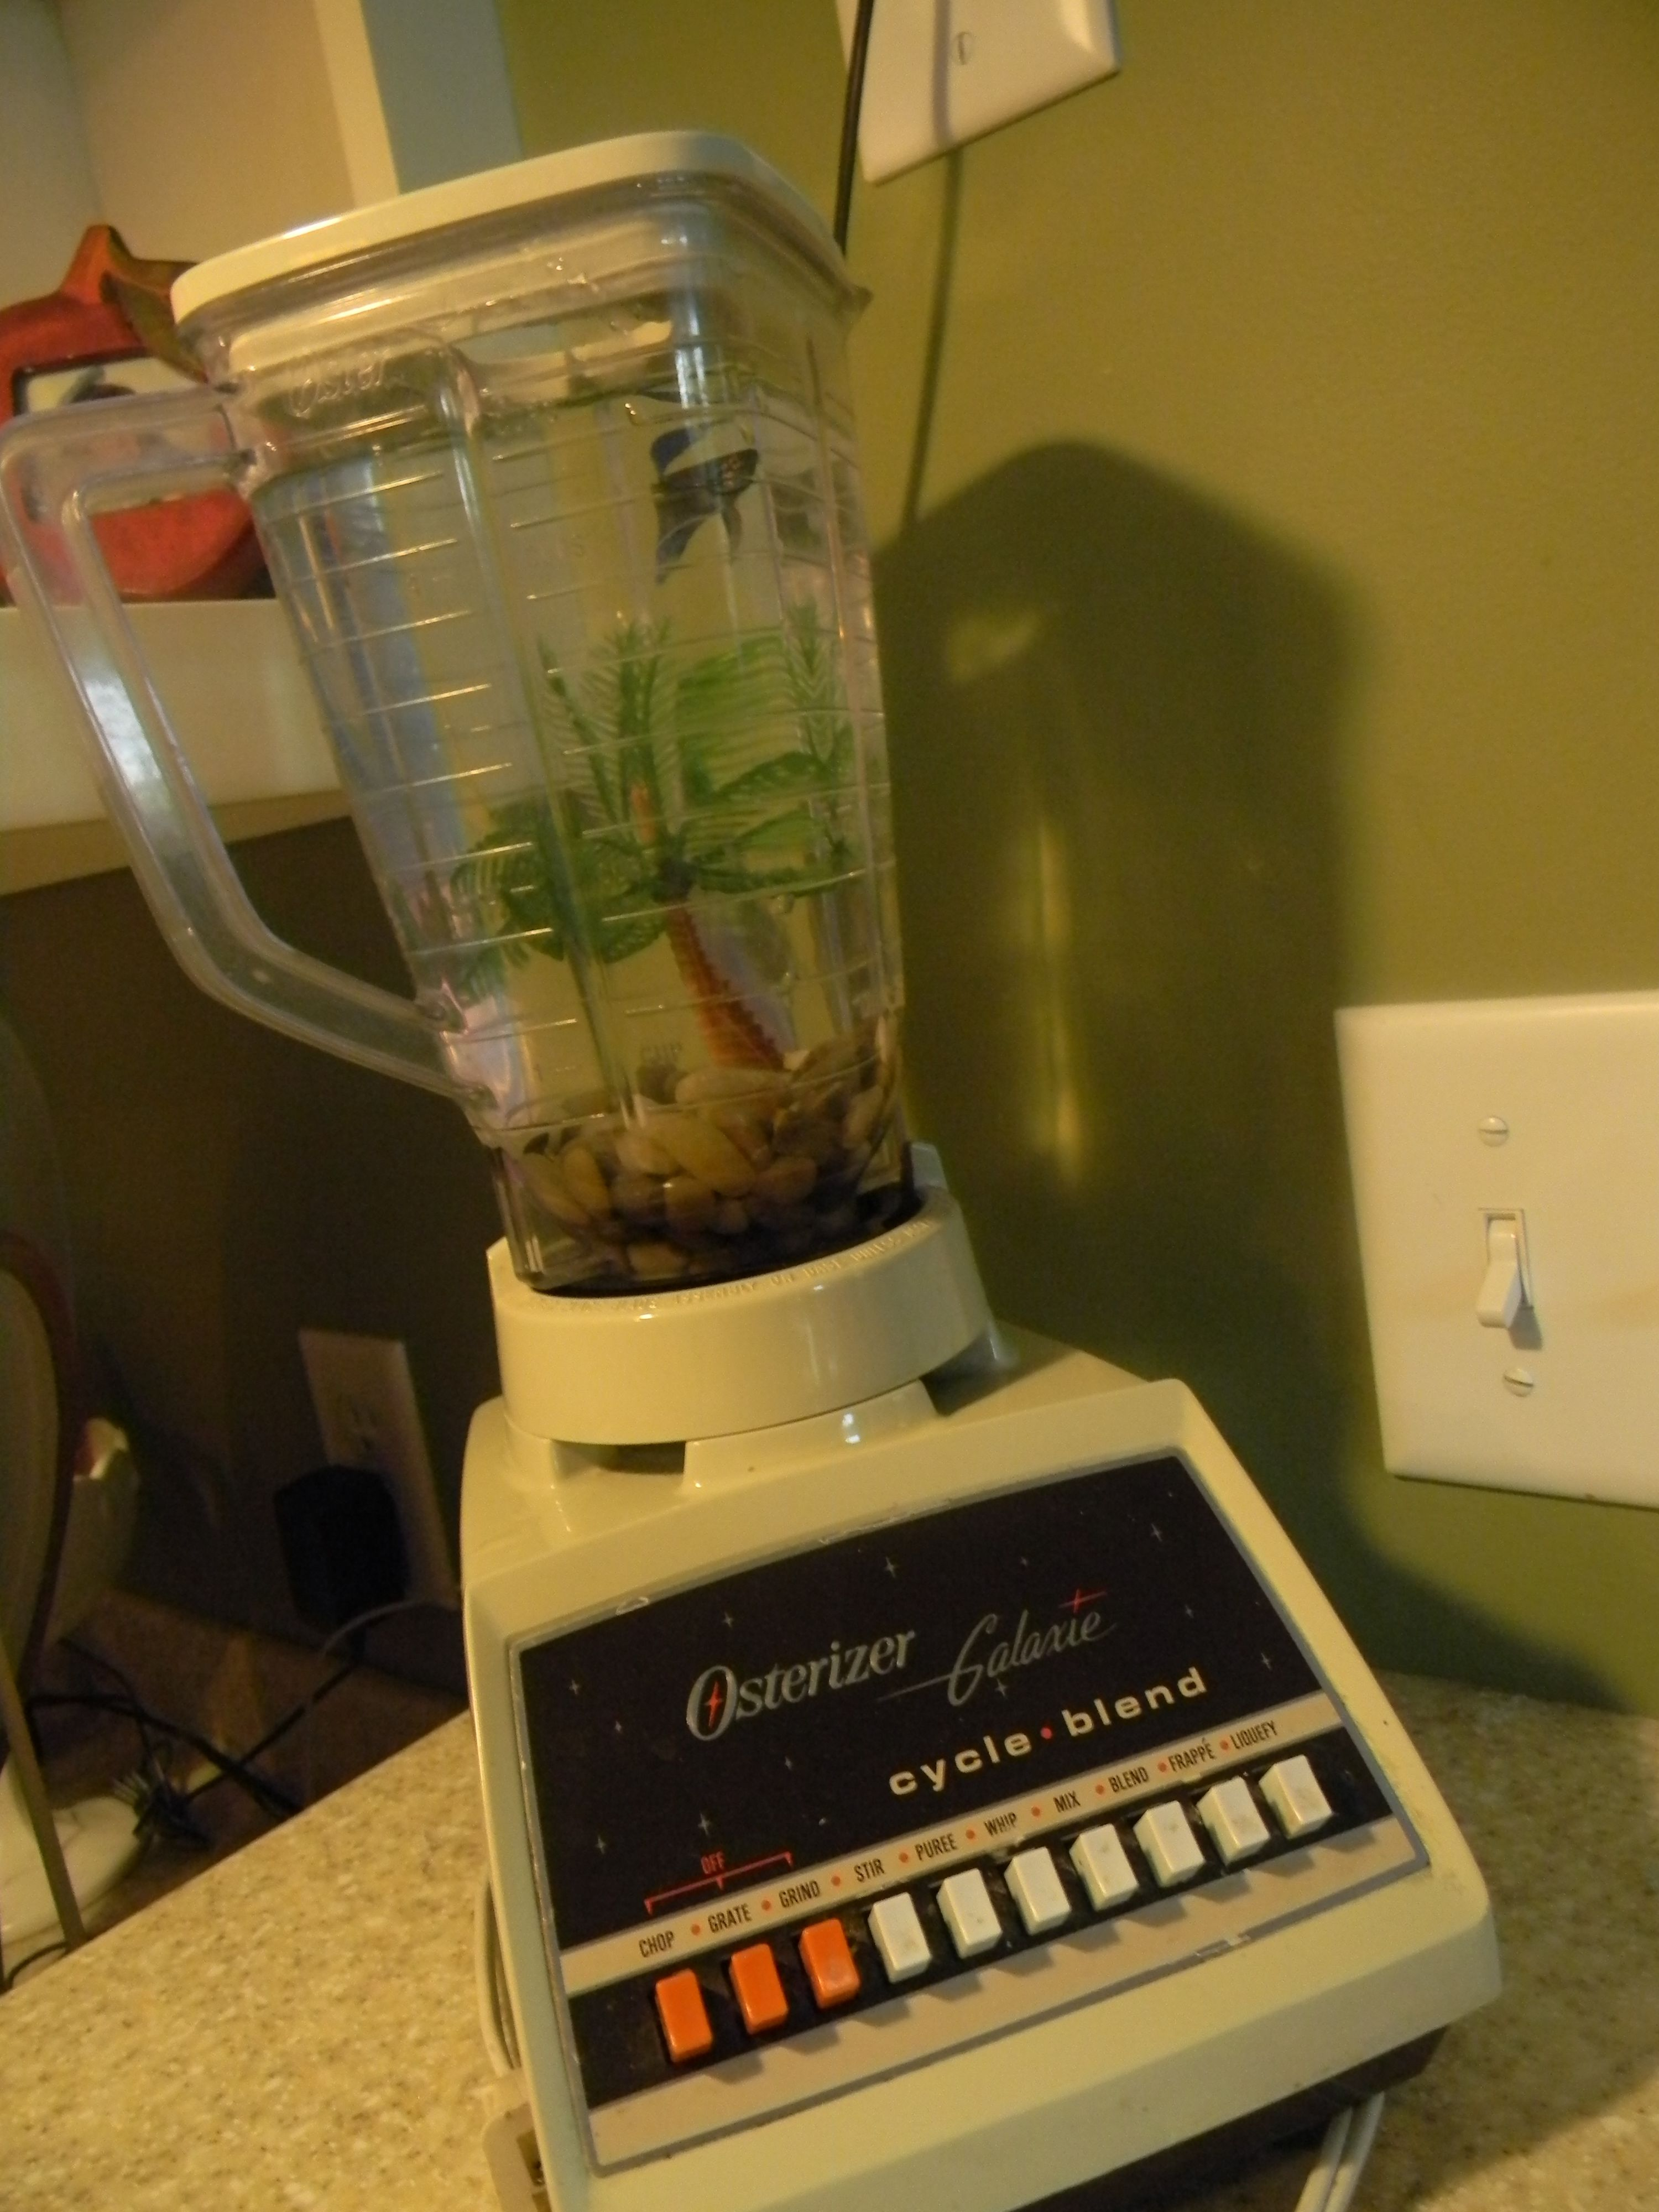 Old blender fish tank idea from pinterest crafts for Fish in a blender